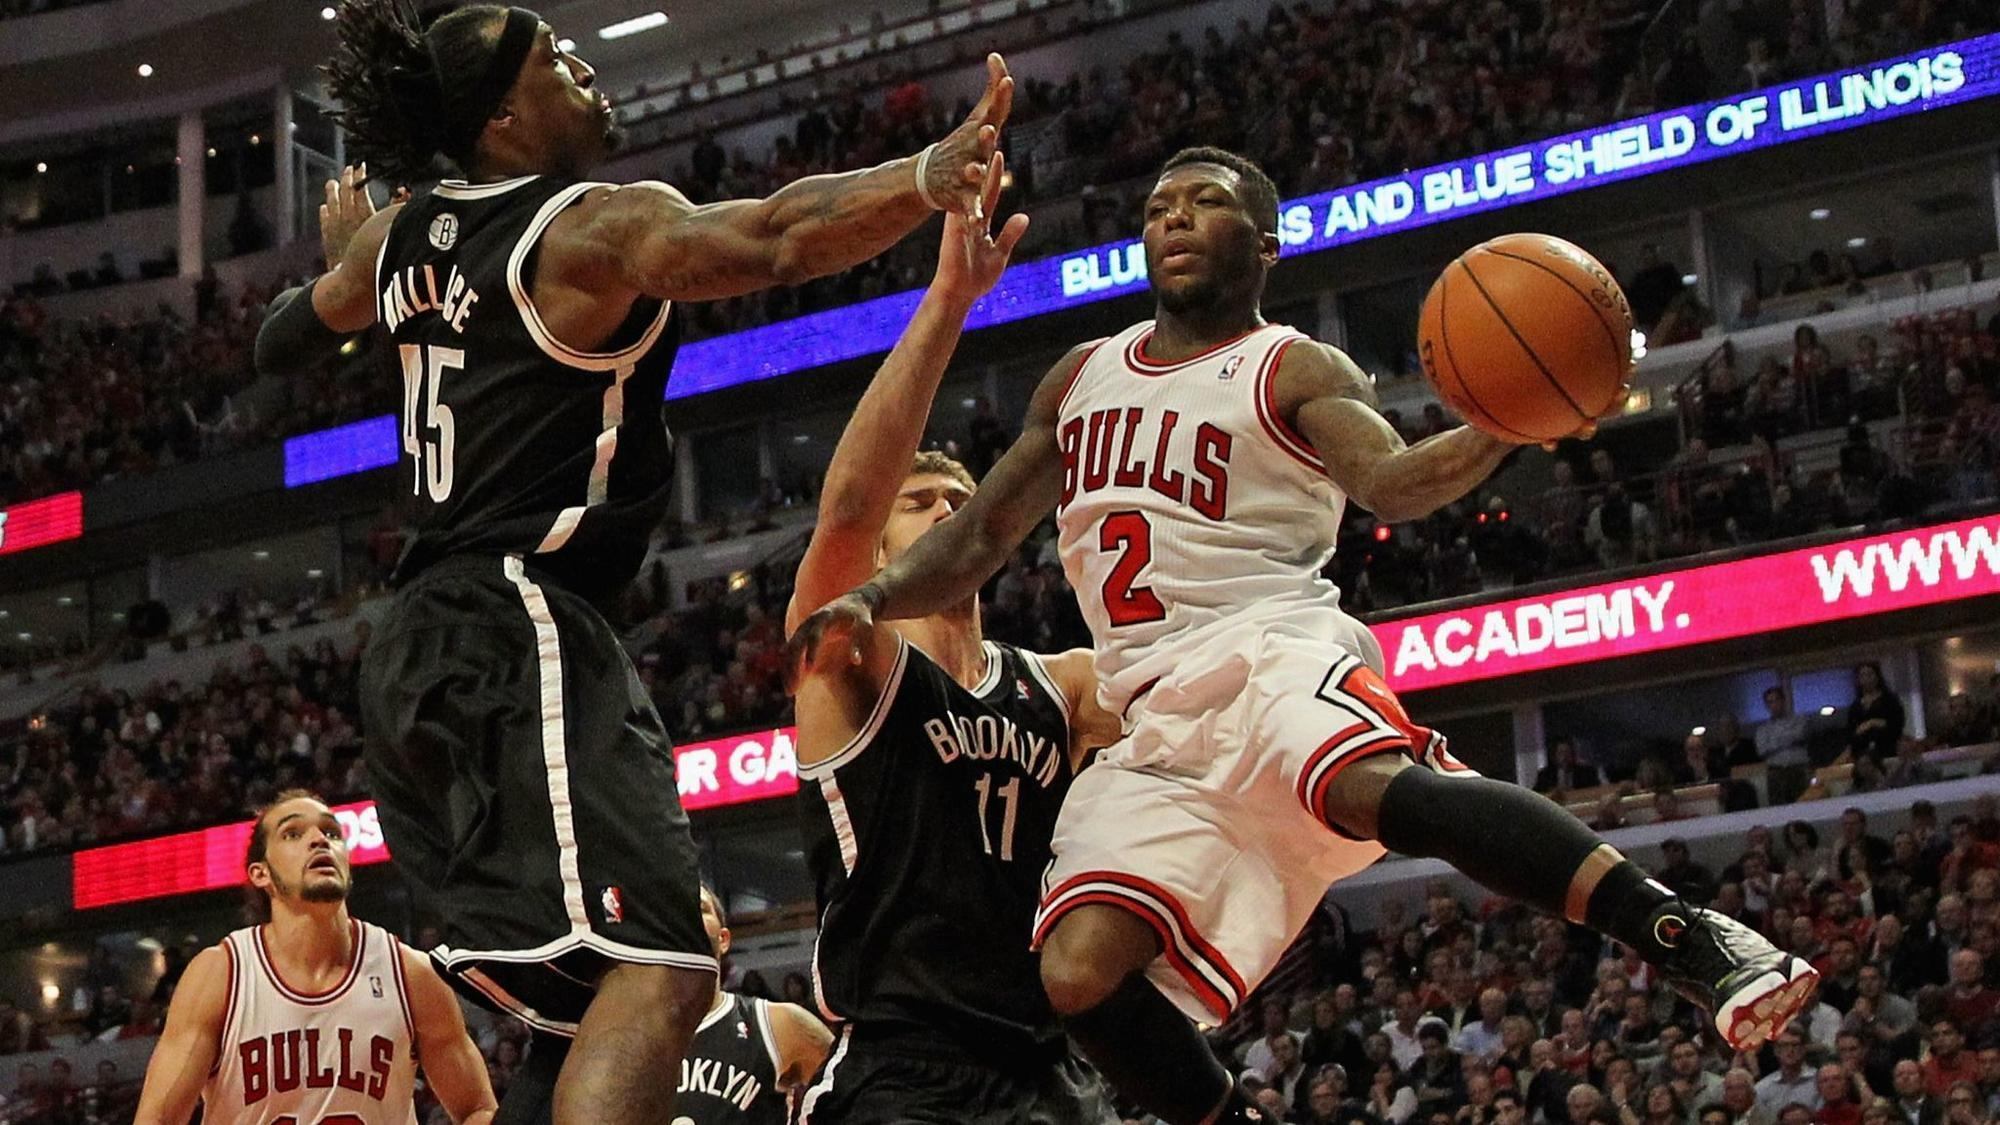 Ex-Bull Nate Robinson joins Ice Cube s Big3 league - Chicago Tribune fc696257a